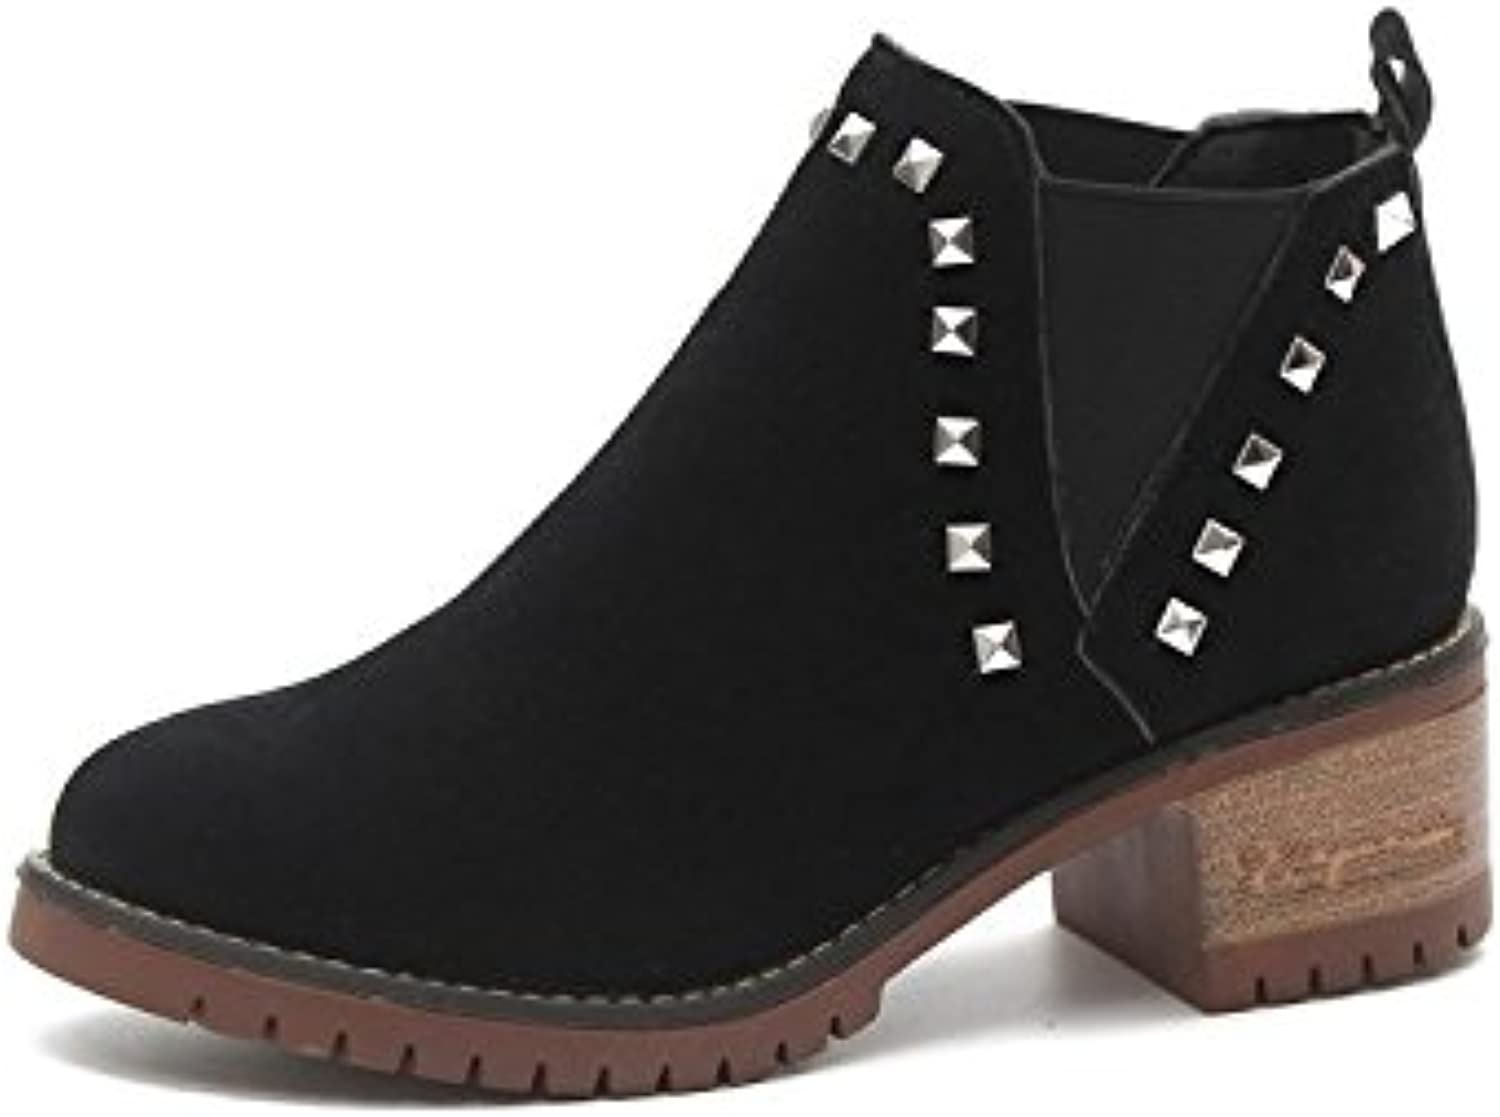 WYMBS Women's Autumn Winter Rough with Round Head Rivet Short Boots Leisure shoes,Black,36